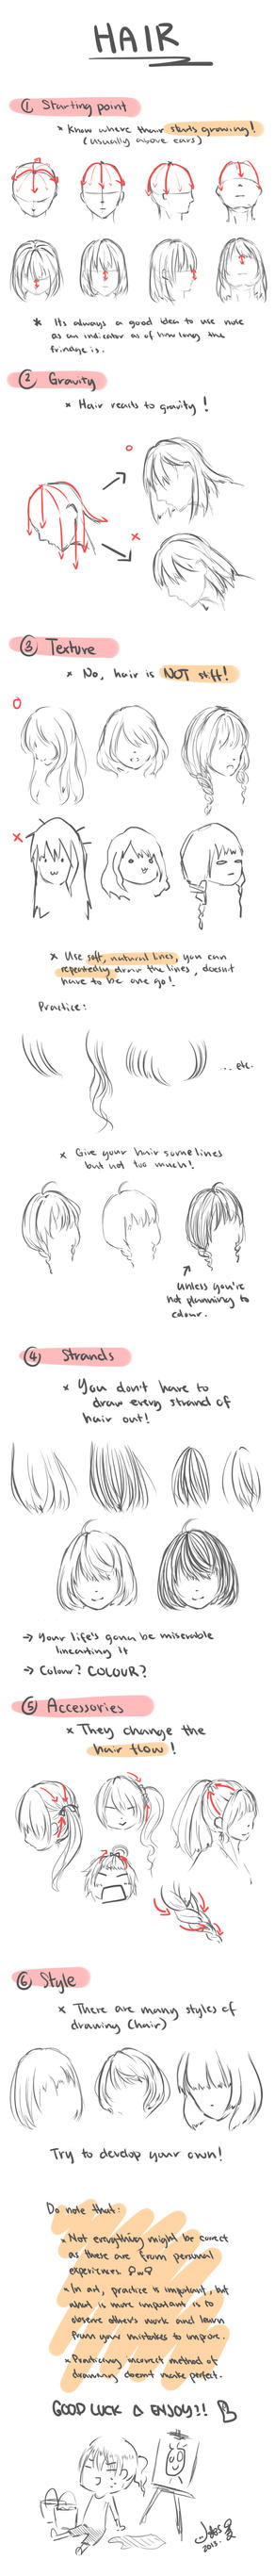 Hair tutorial by Viatasi